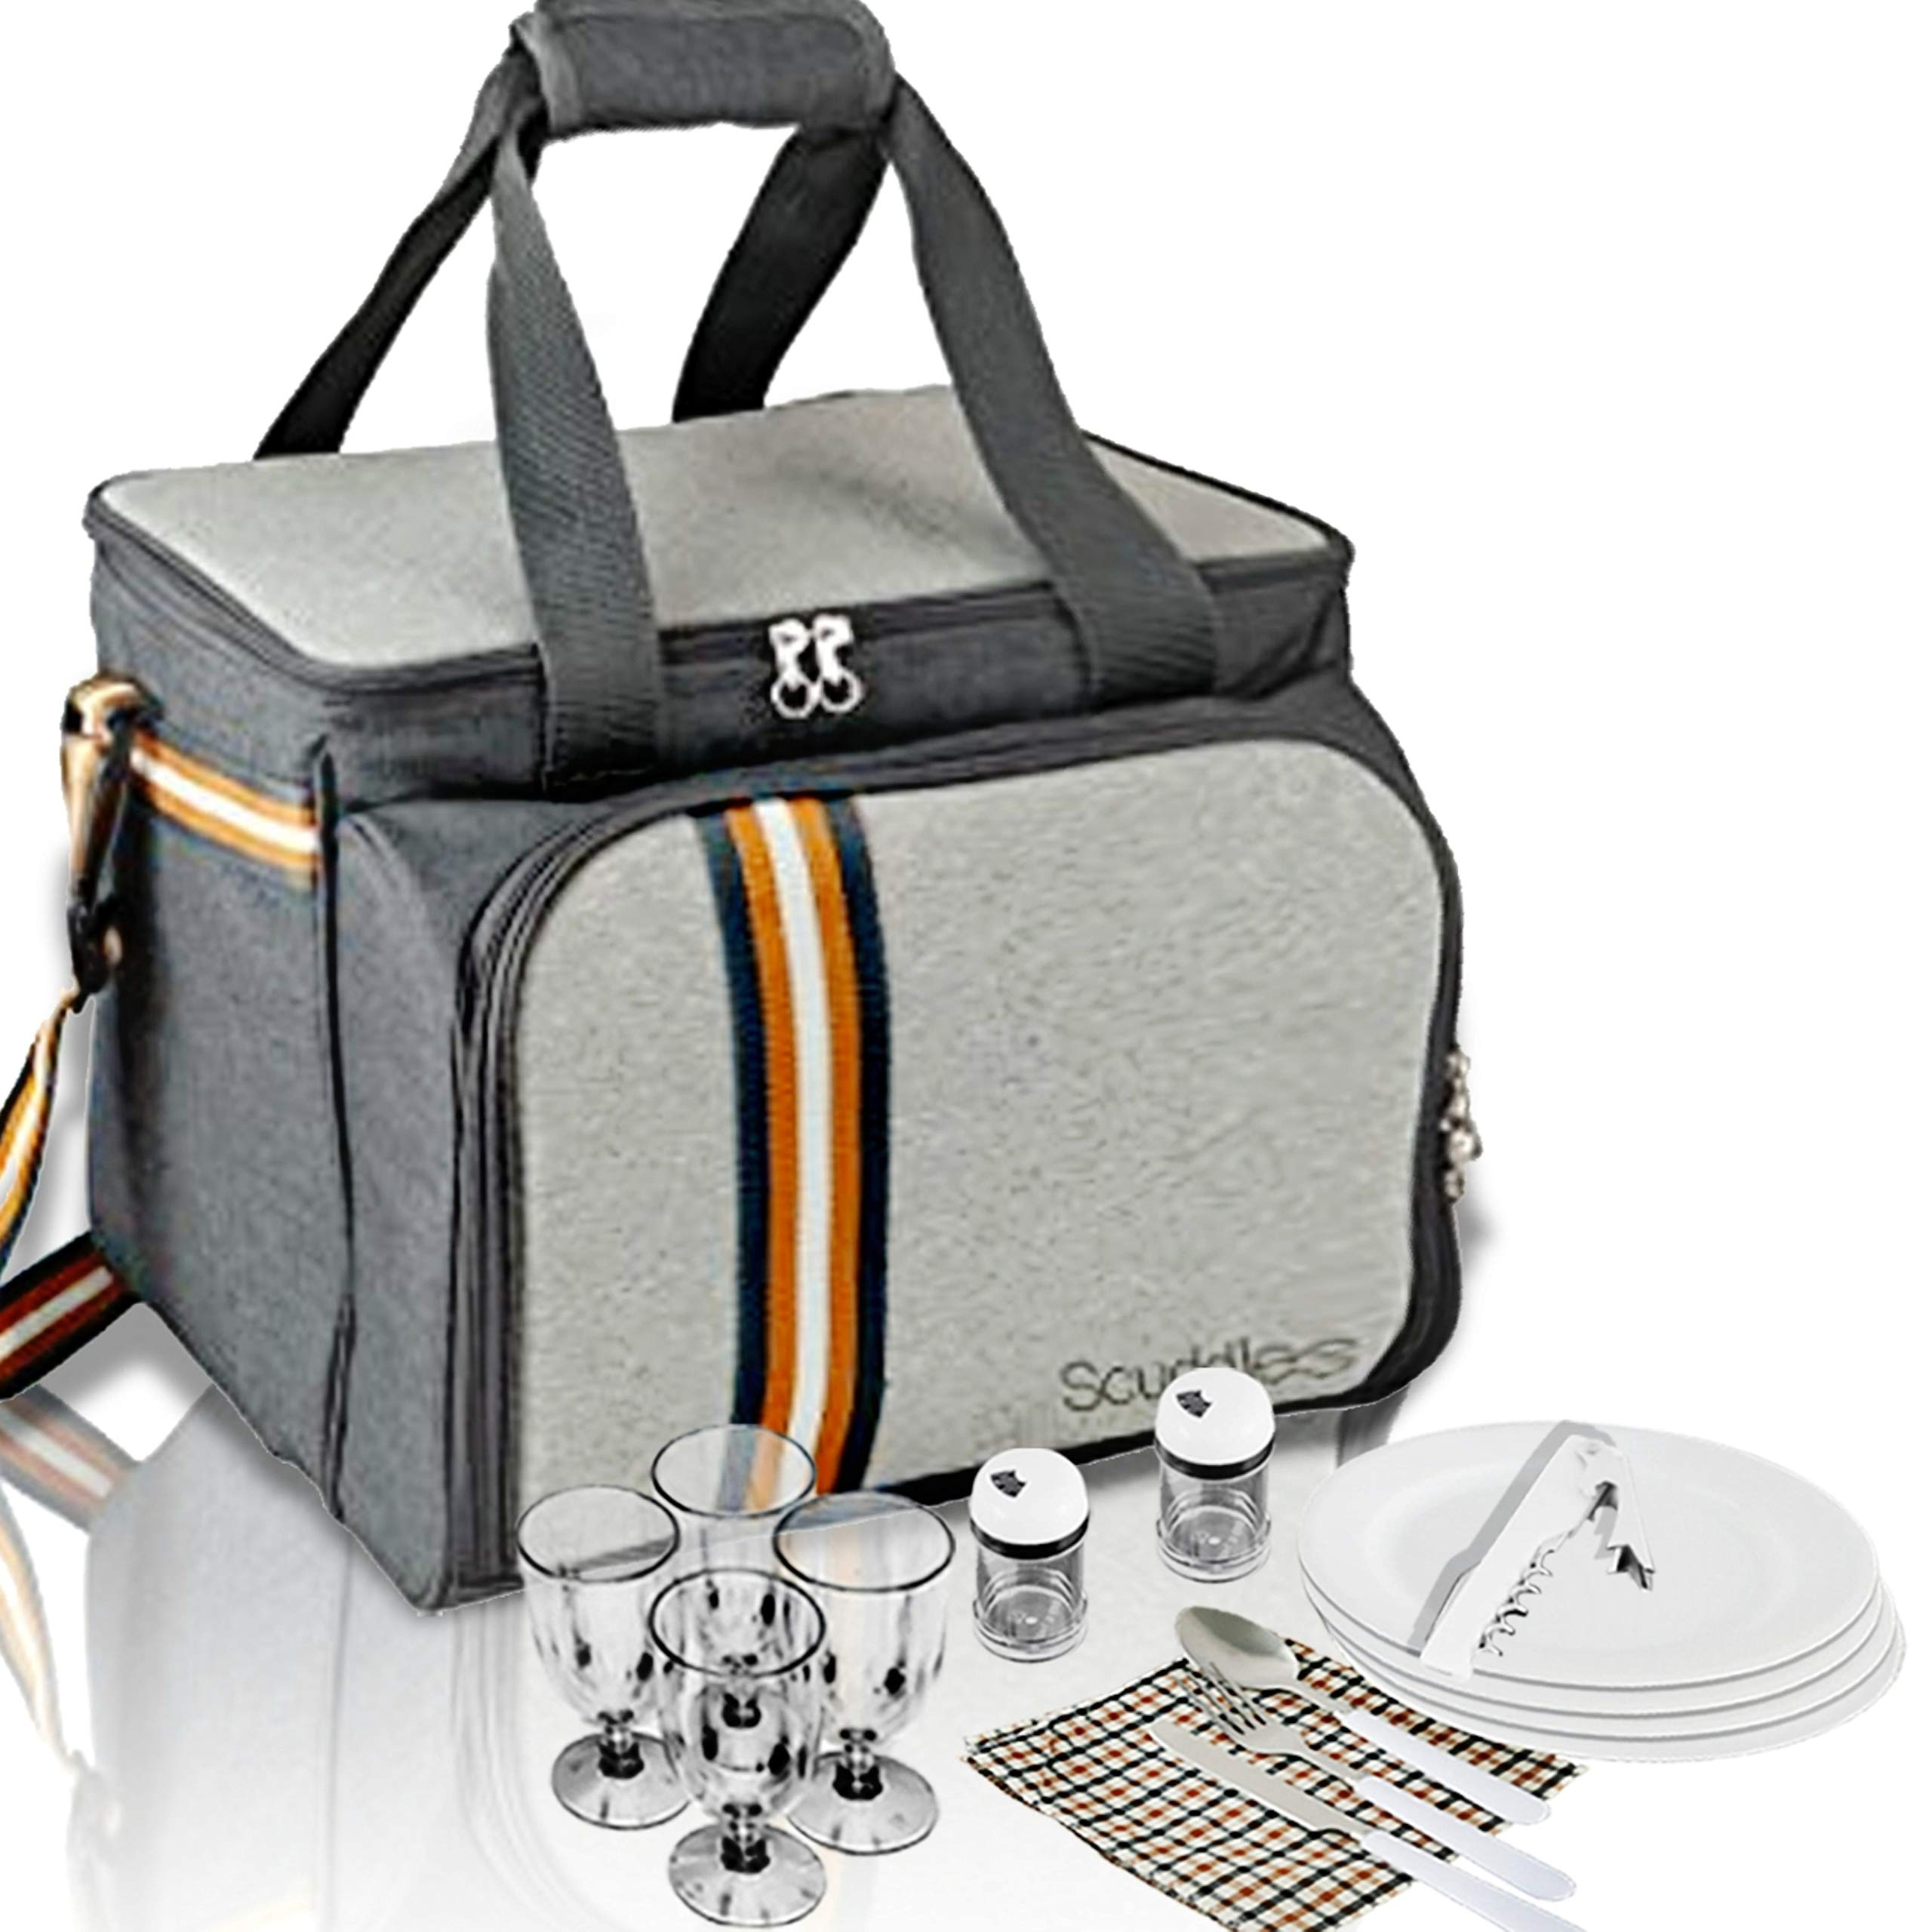 PREMIUM Extra Large Picnic Basket keeps food Hot/Cold for 12 Hours UPGRADED lunch tote For 4 People Picnics includes stainless steel spoons forks plates napkins wine With Flatware (PICNIC BASKET) by Scuddles